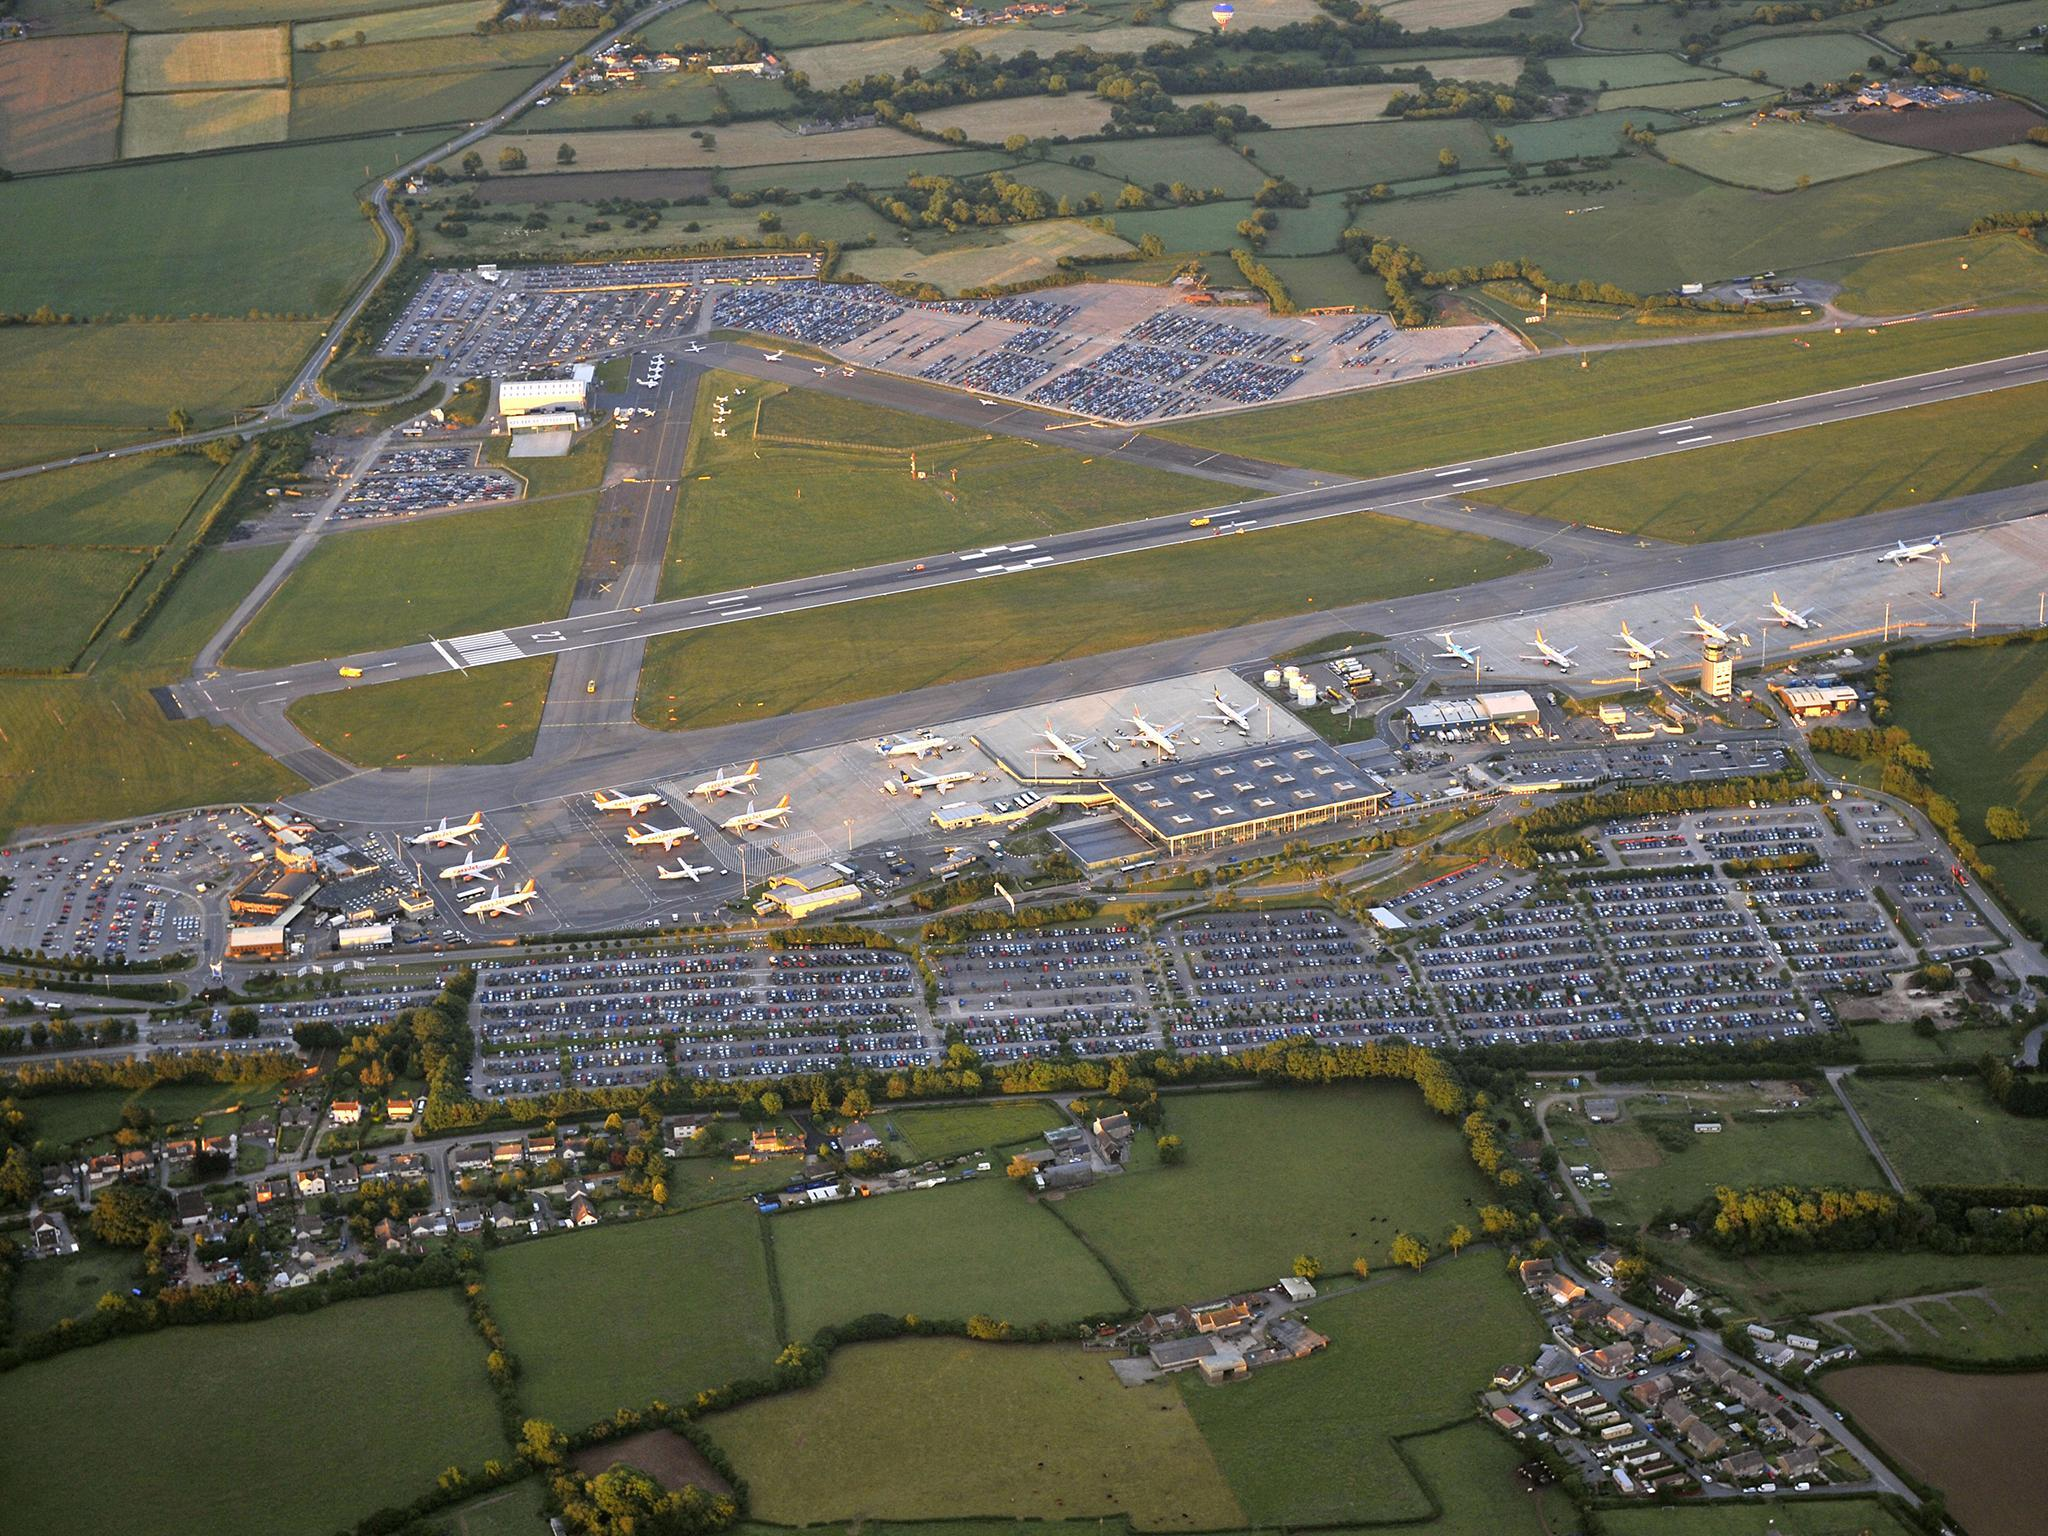 Uk Basketball: Bristol Airport Delays Warning After Alarm Triggers